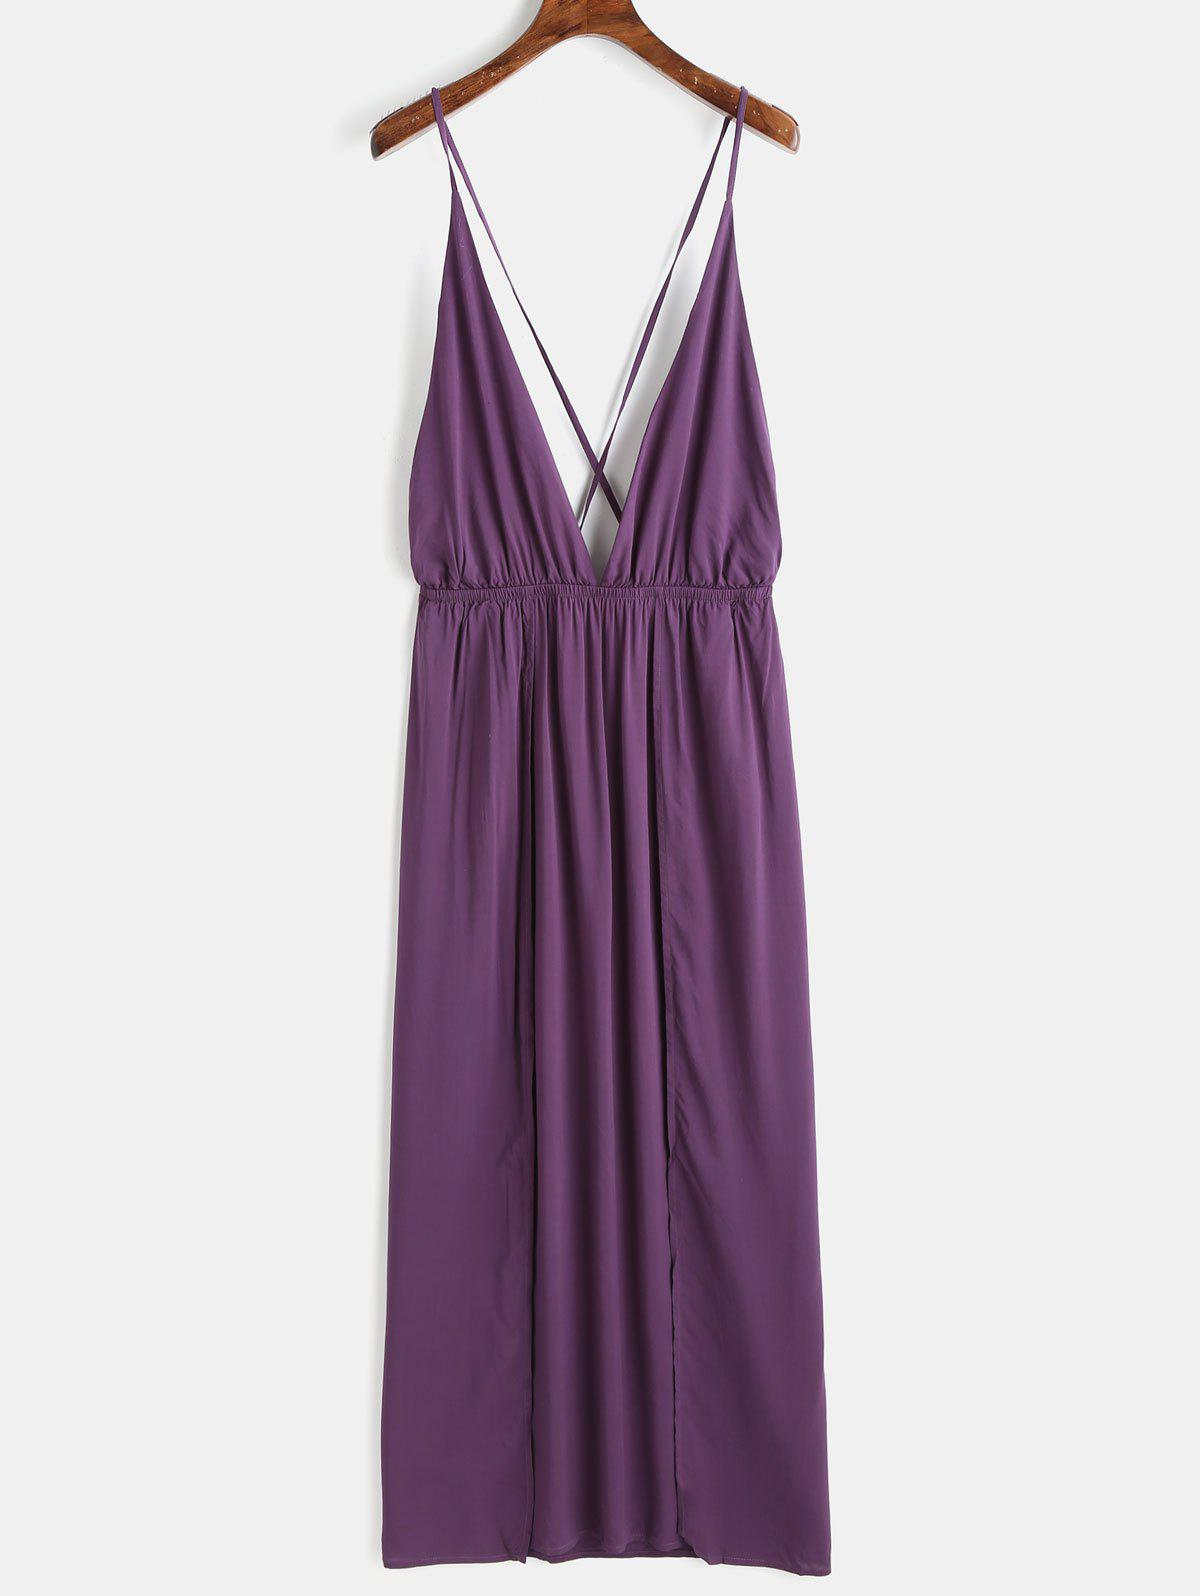 Plunge High Slit Maxi Dress - PURPLE HAZE XL